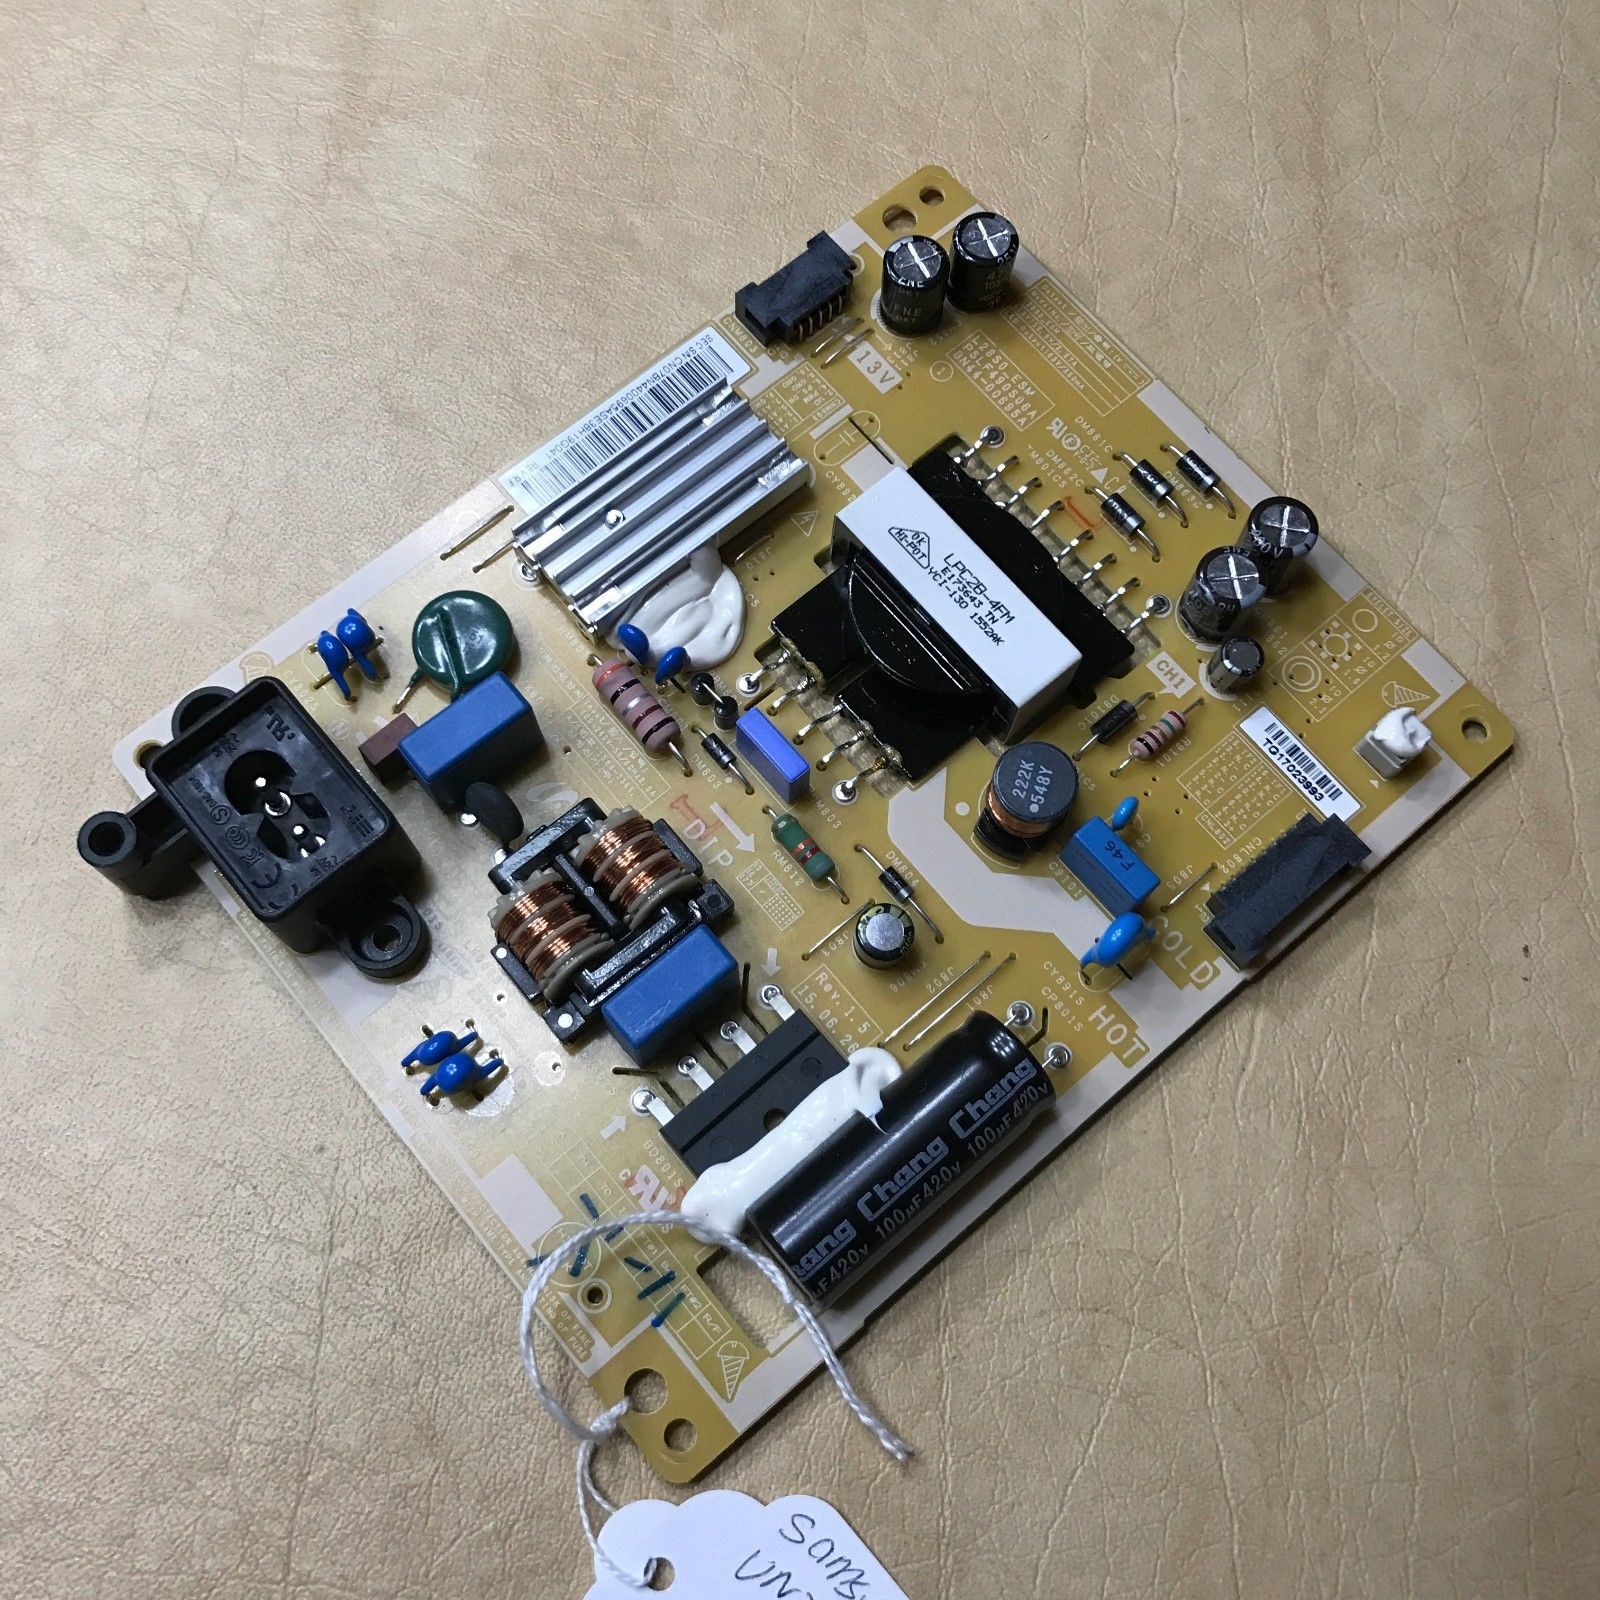 SAMSUNG BN44-00695A POWER SUPPLY BOARD FOR UN28H4000A AND OTHER